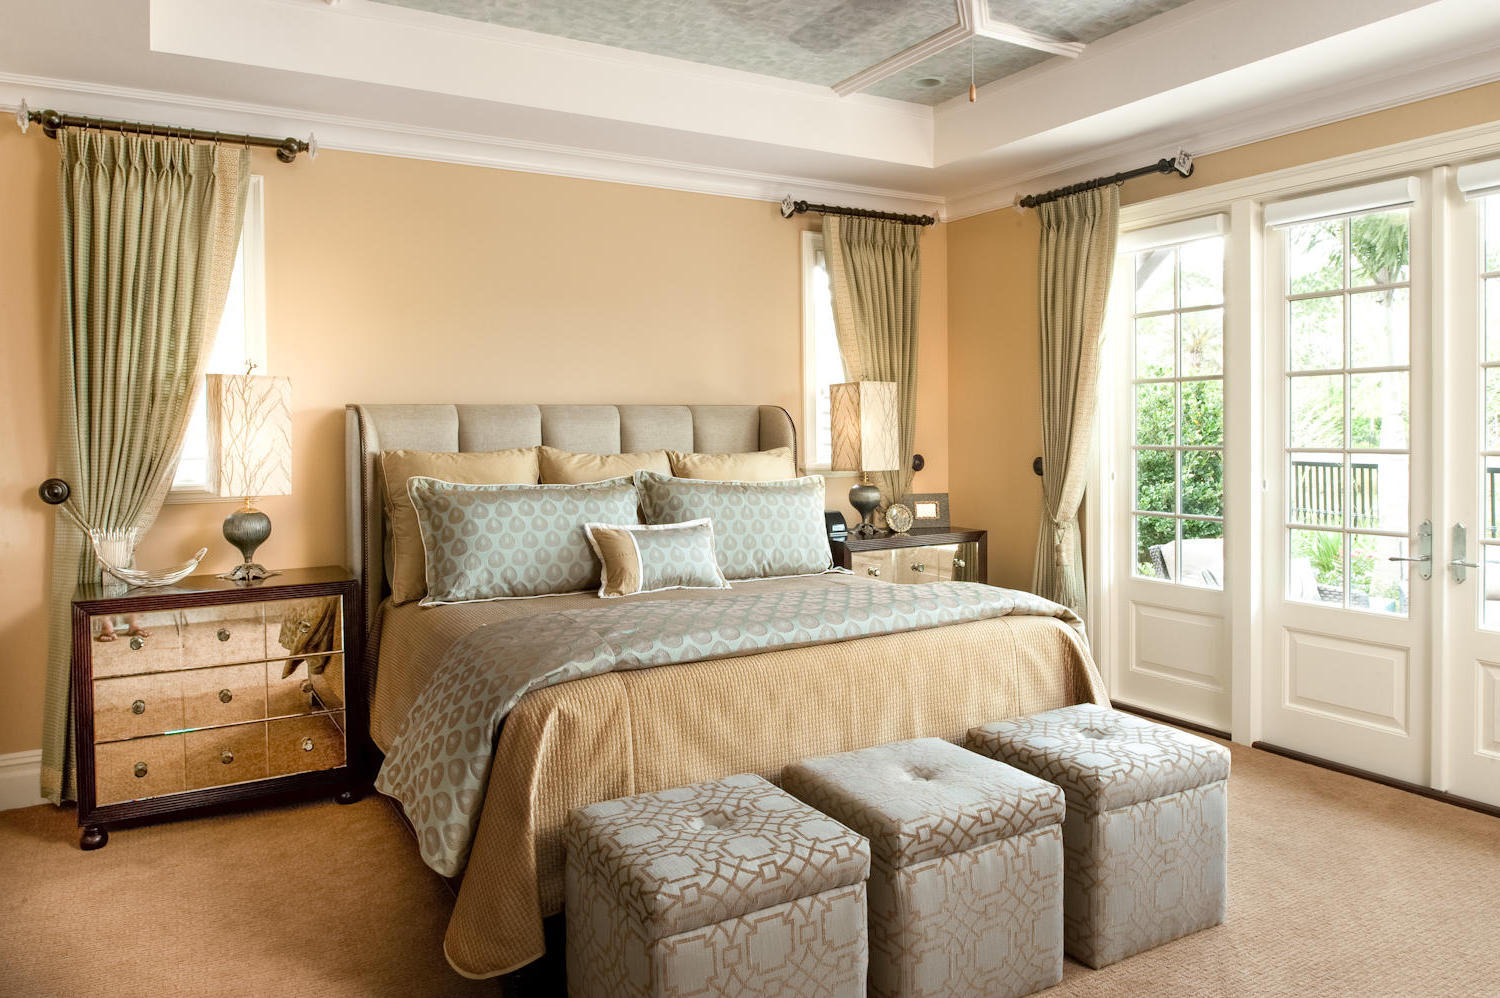 Featured Image of Traditional Bedroom Theme For Warm And Friendly House